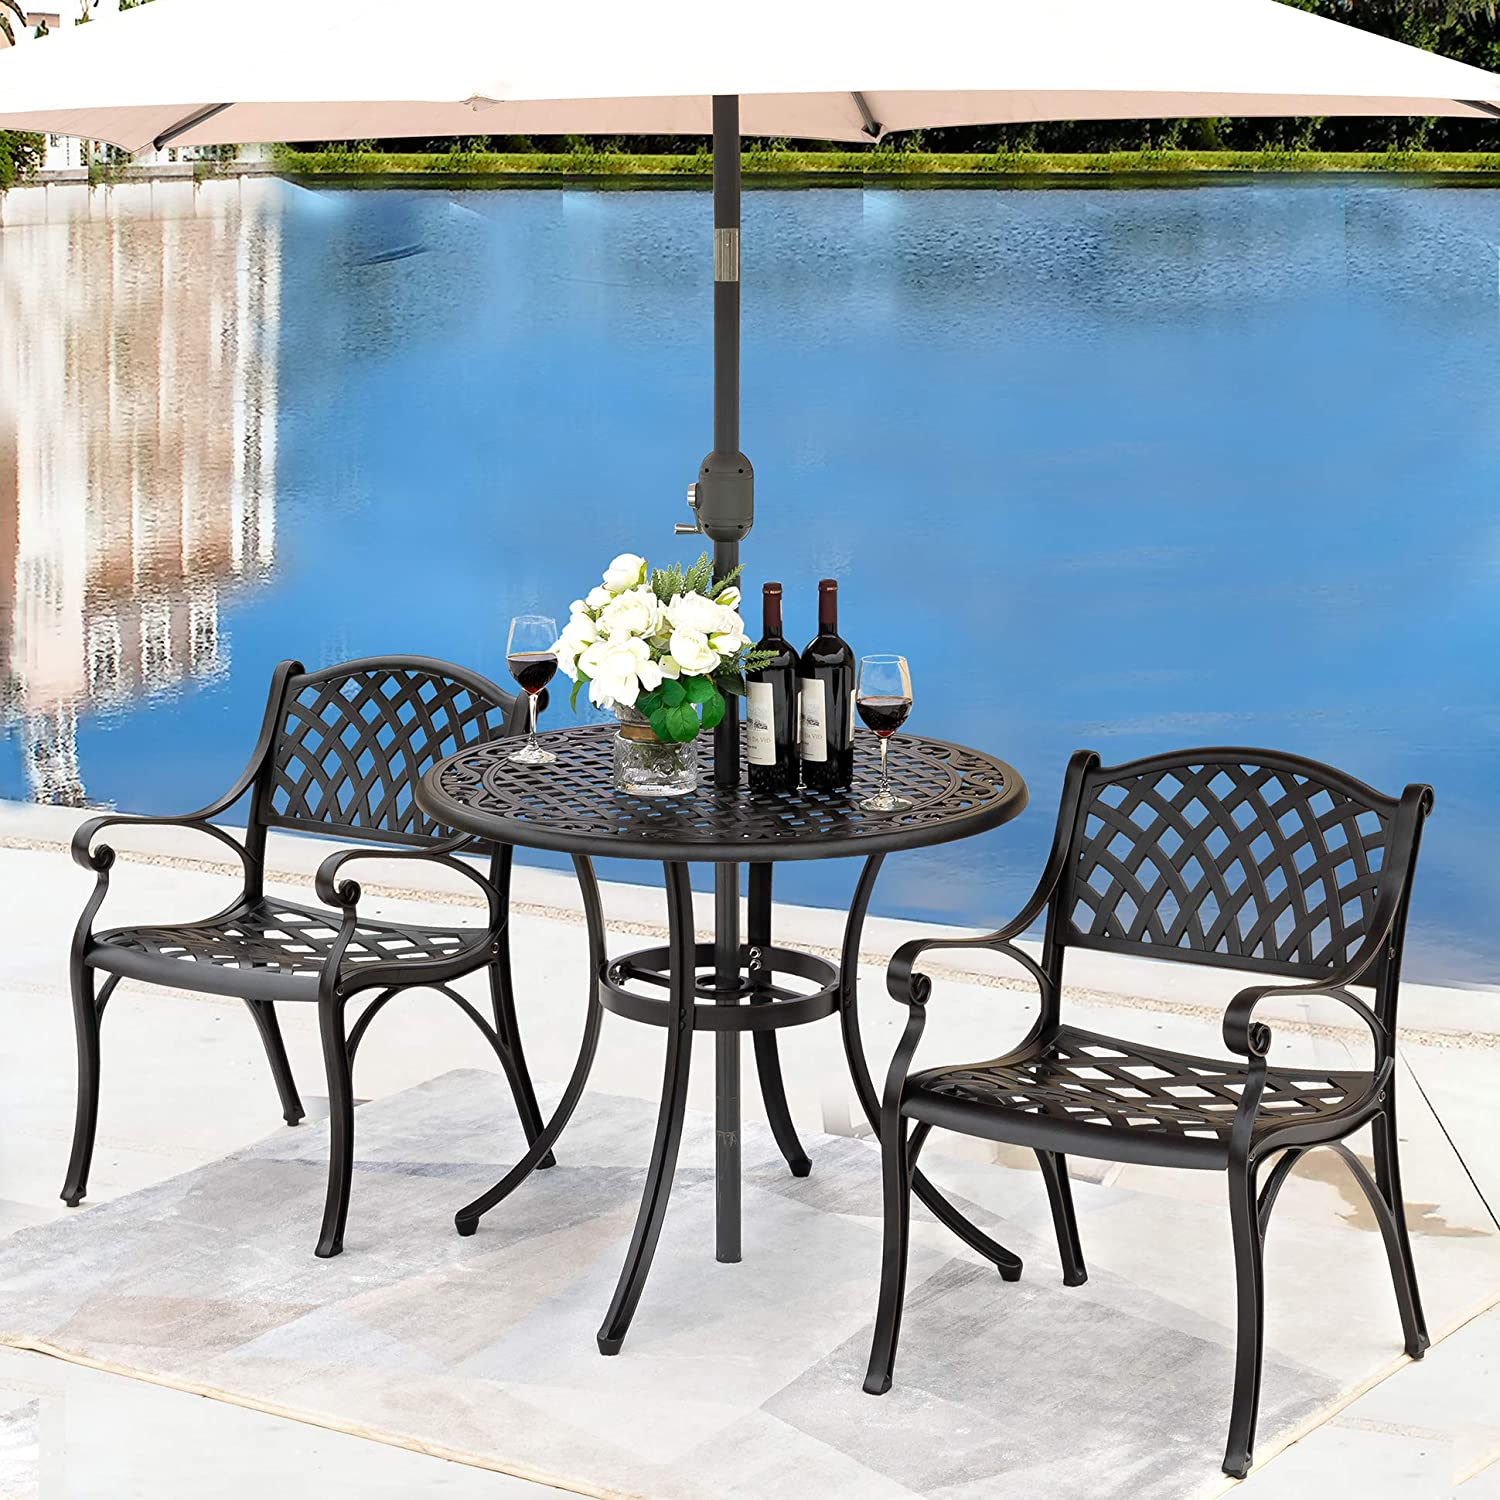 "NUU GARDEN Outdoor Patio Furniture 3 Piece Powder Coated Aluminum Dining Set with 36"" Round Table and 2 Arm Chairs, Black"